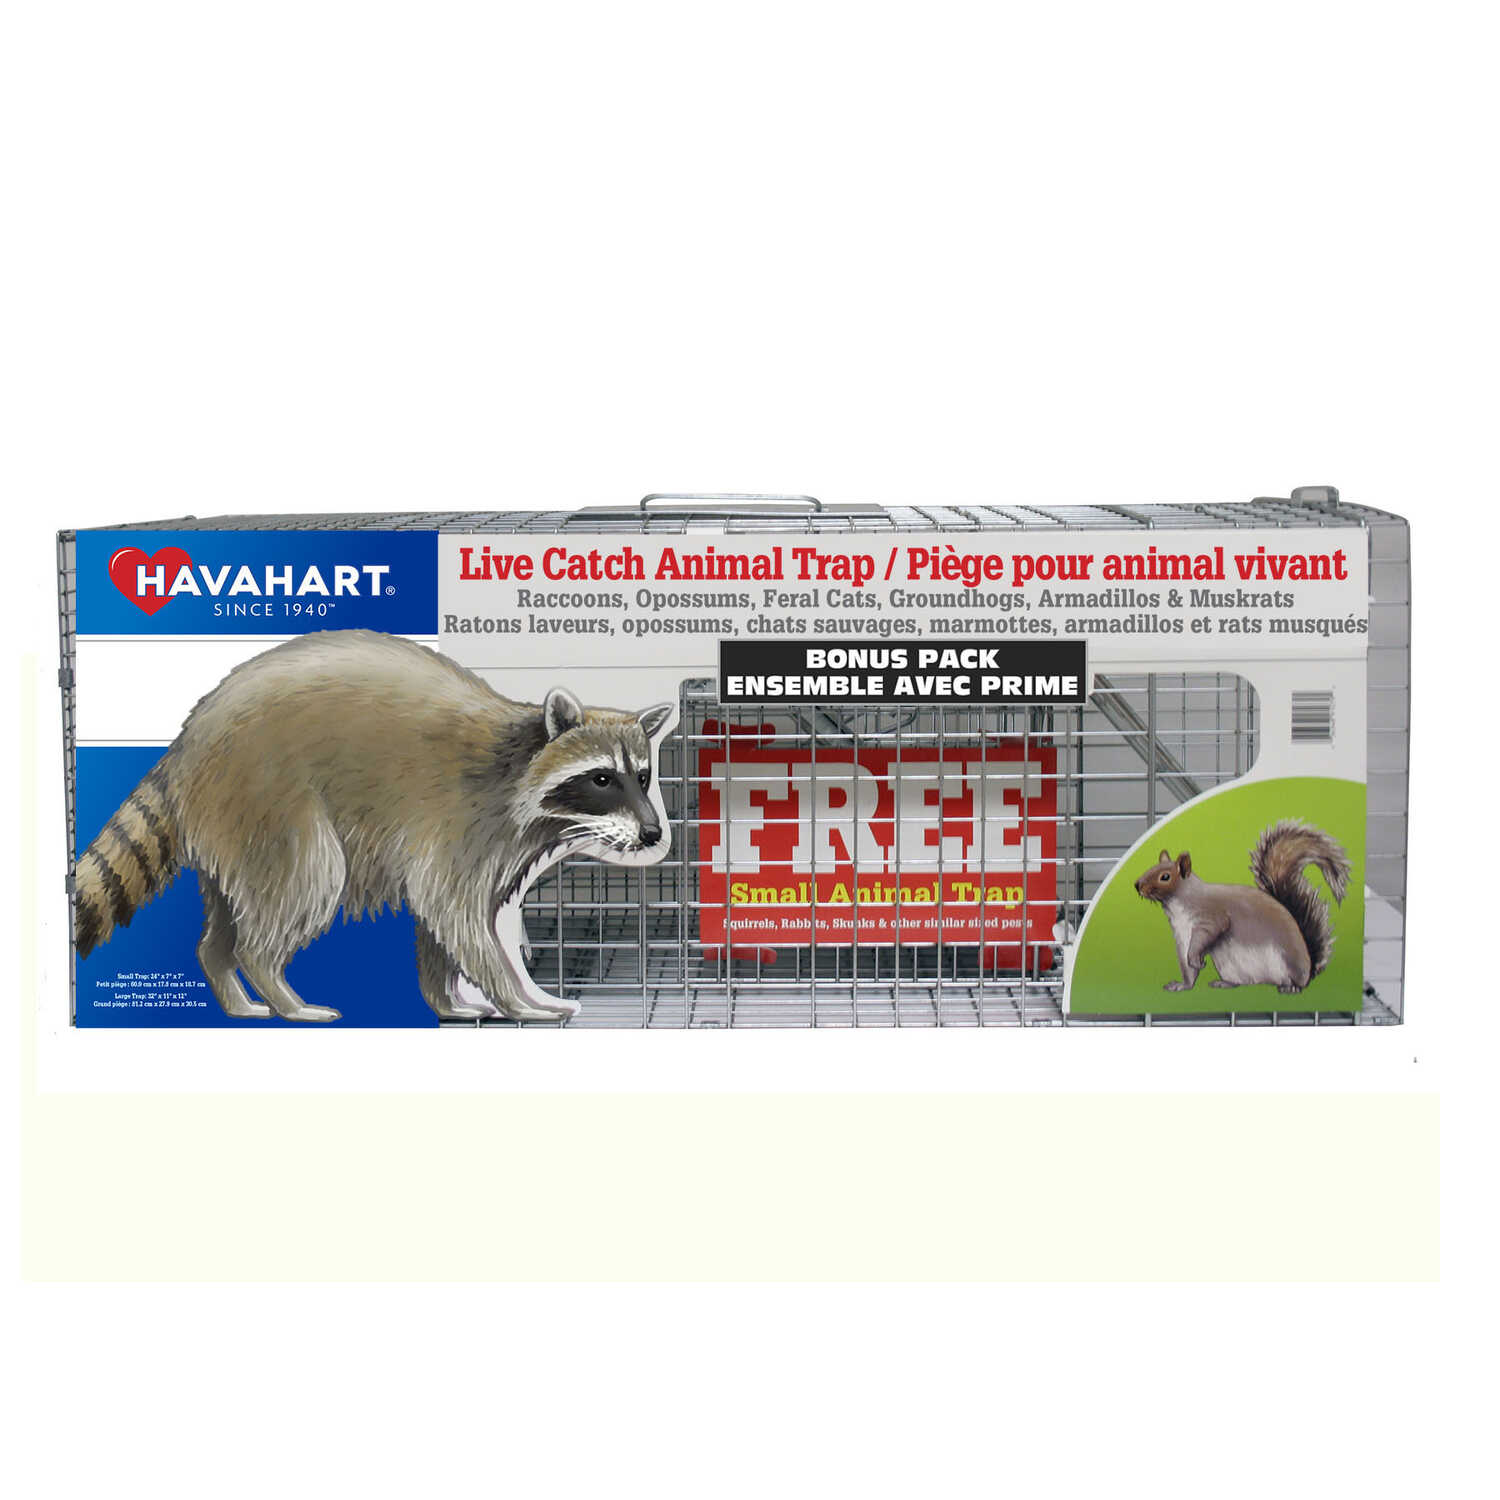 Havahart  Live Catch  Animal Trap  For Raccoons 2 pk